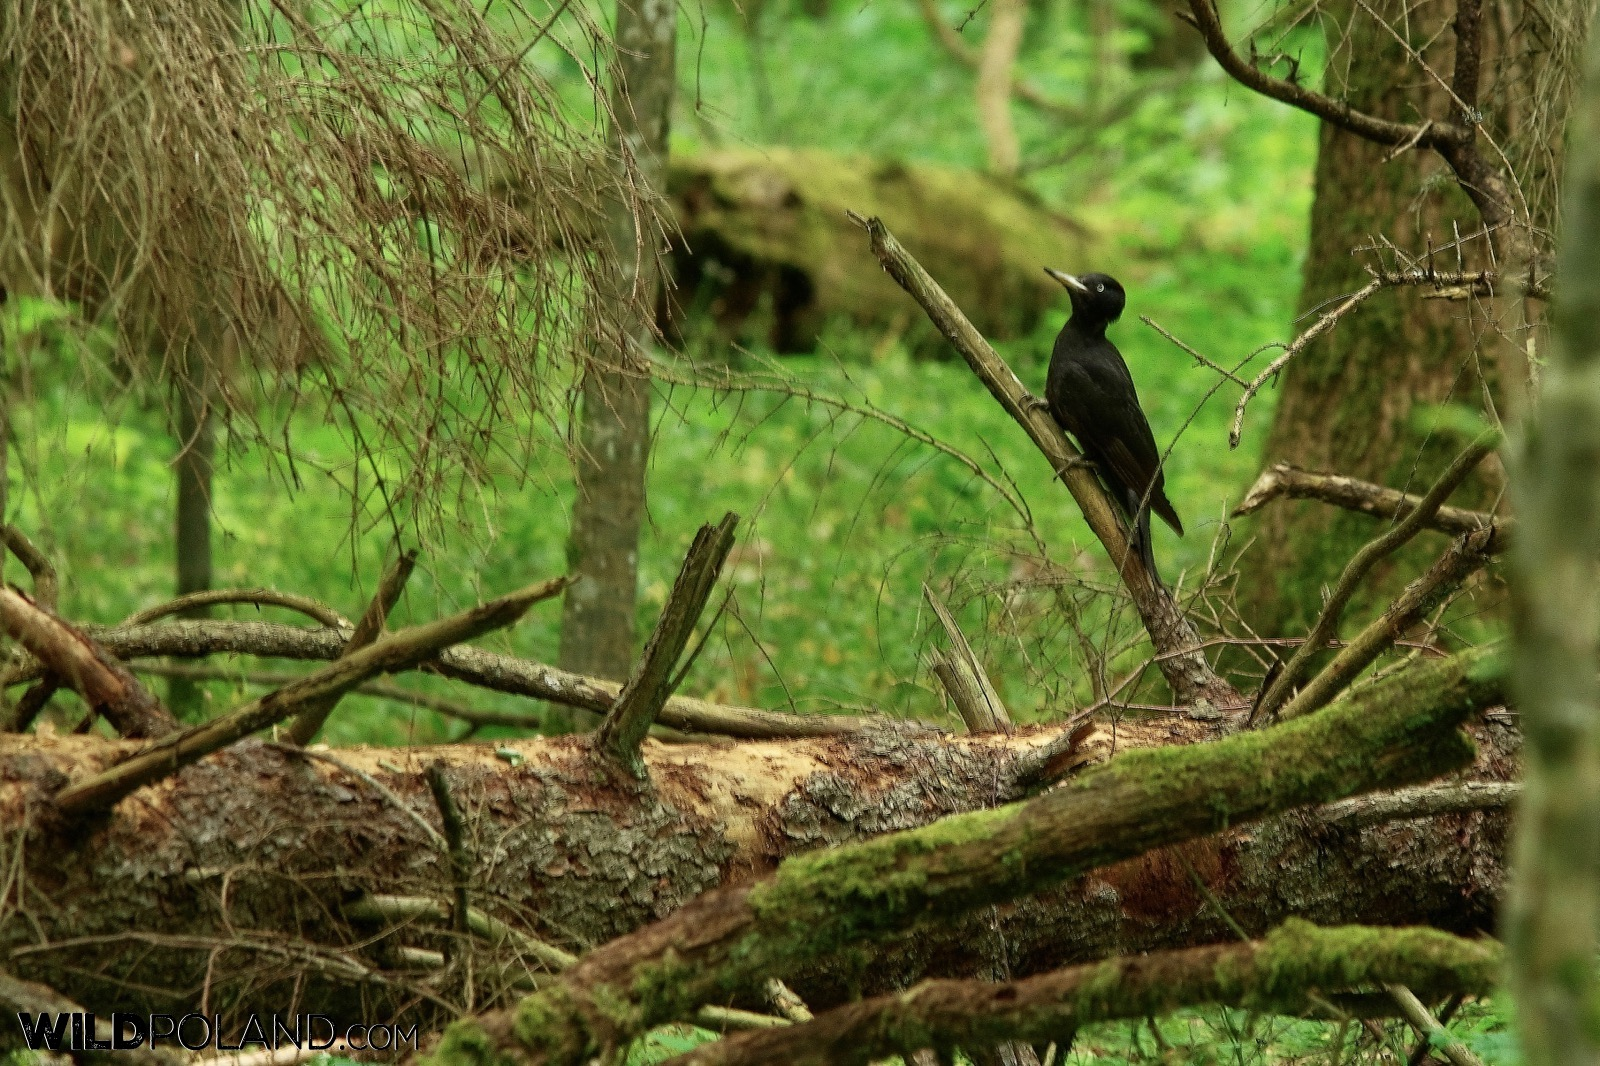 Black woodpecker in the Strict Protection Area of the Białowieża National Park, photo by Andrzej Petryna